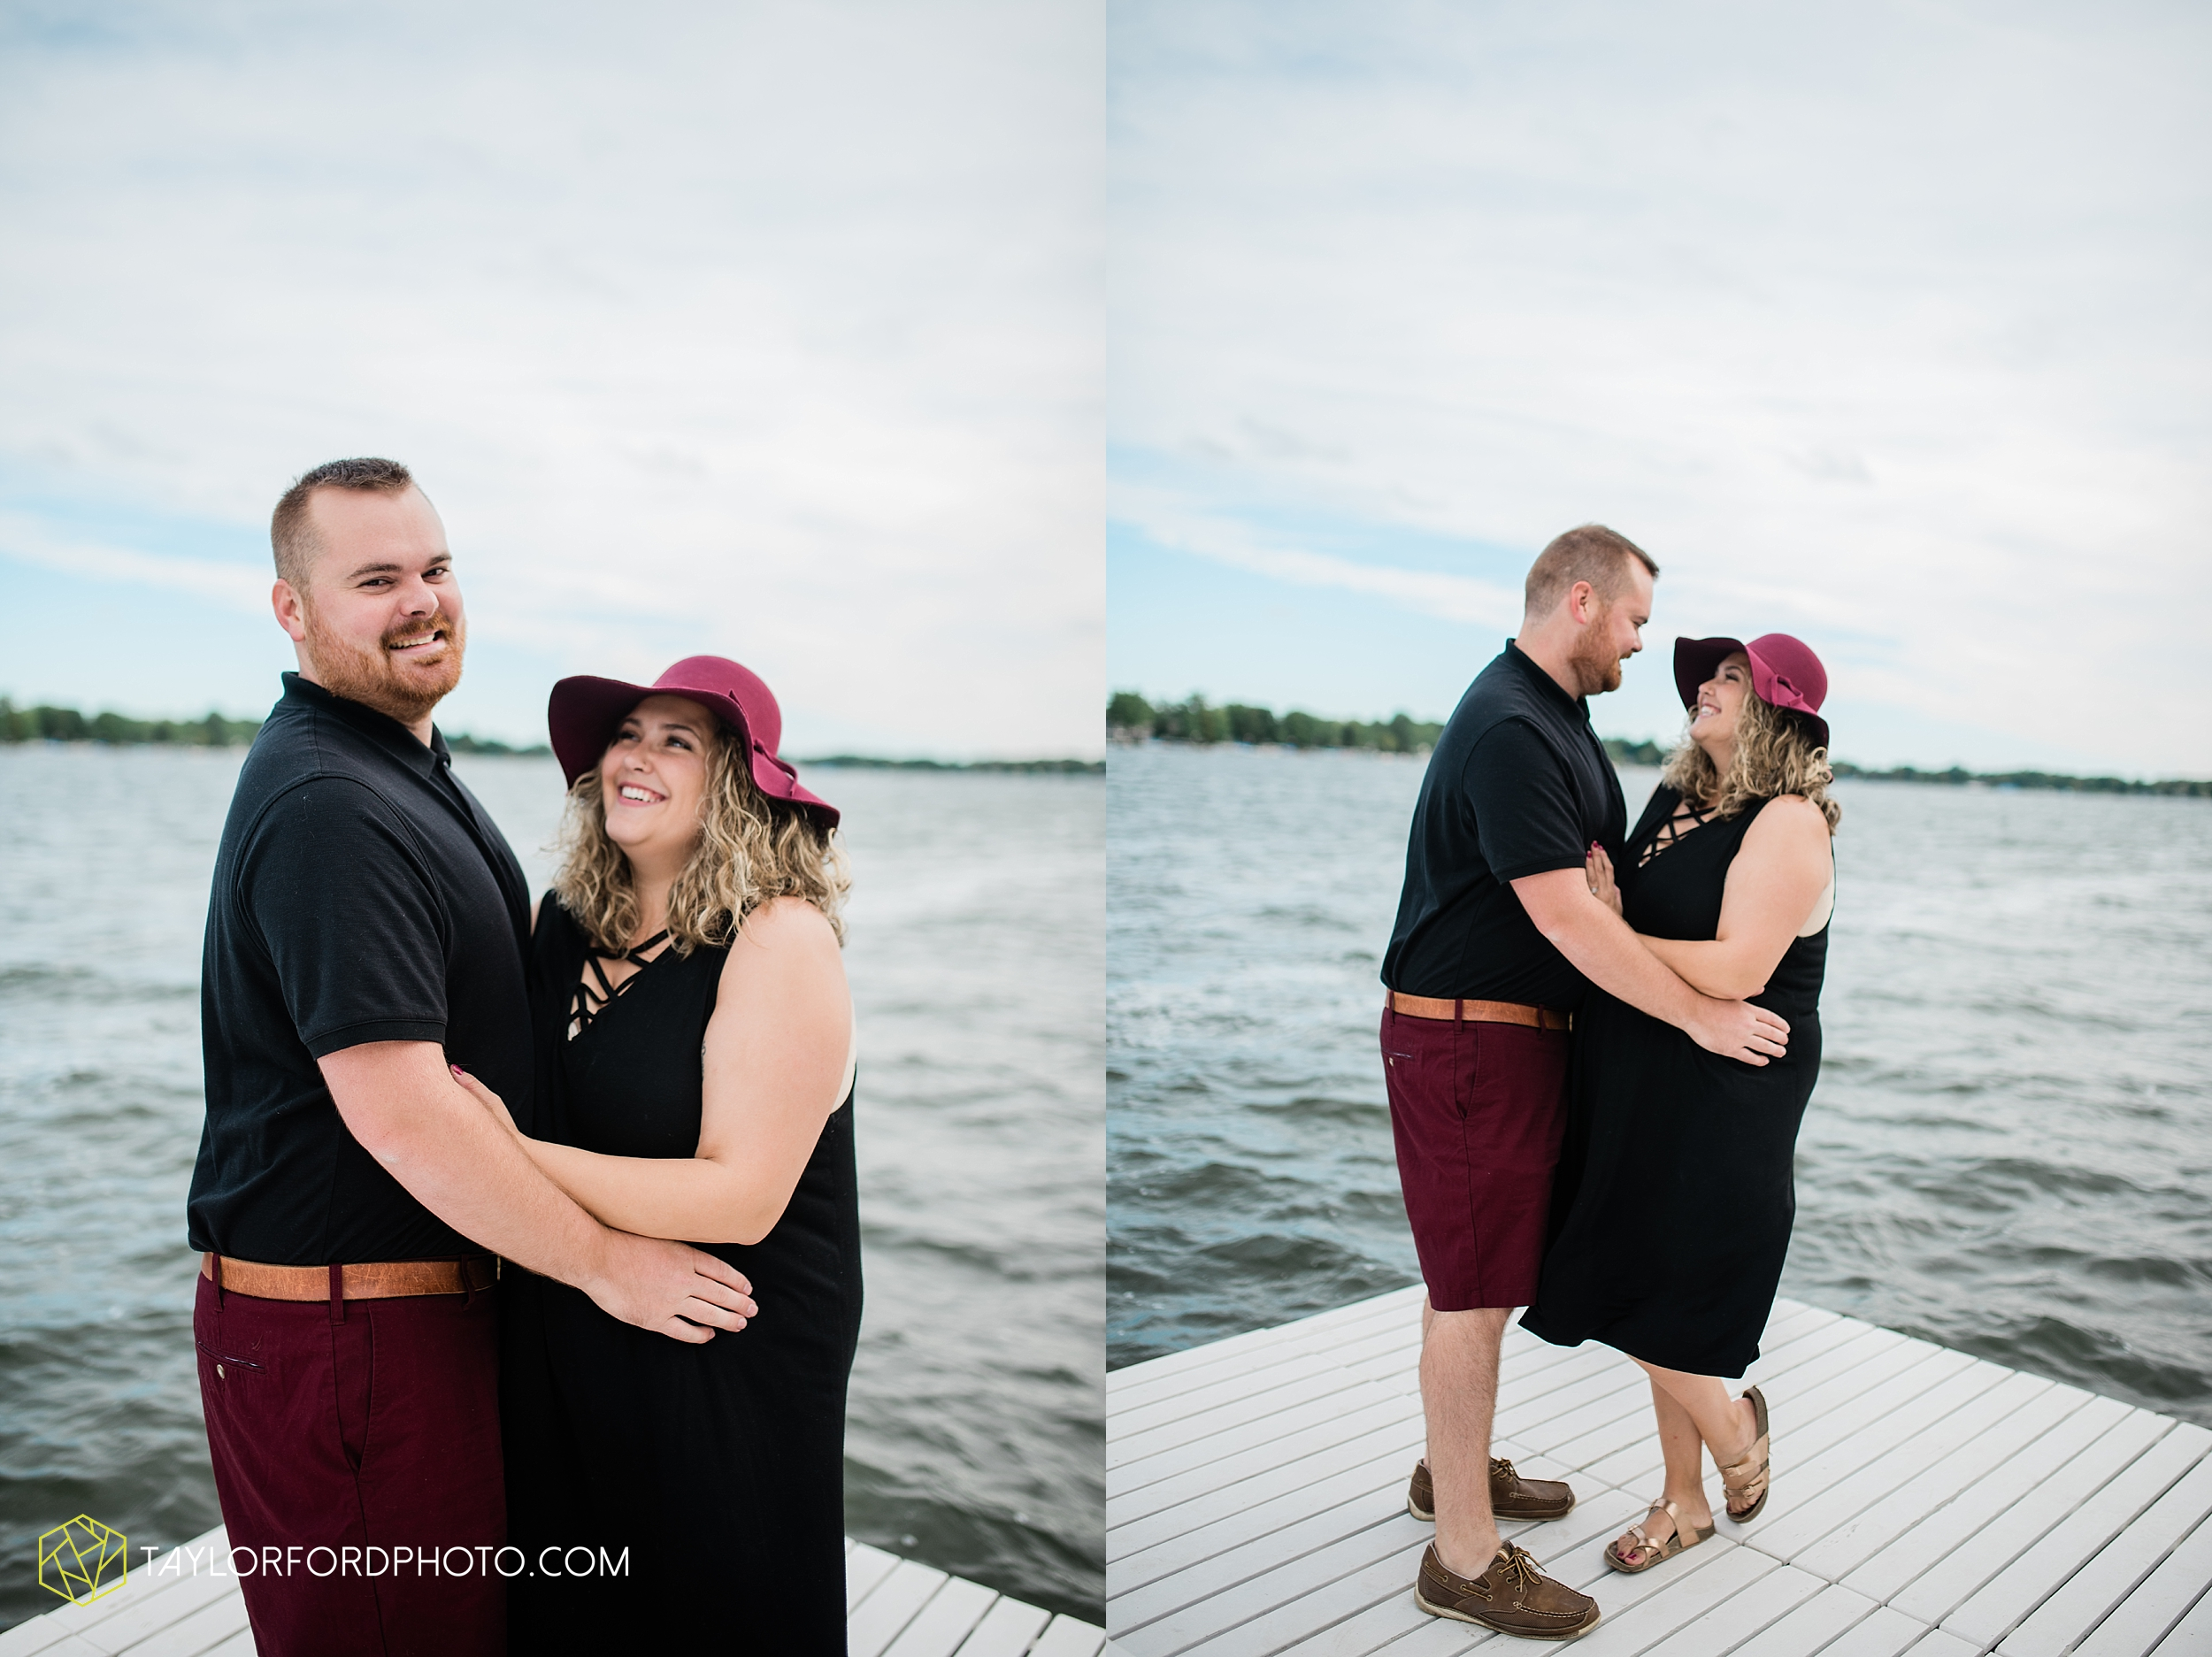 lake-wawasee-conklin-bay-lifestyle-family-september-late-fall-photographer-taylor-ford-photography_0607.jpg